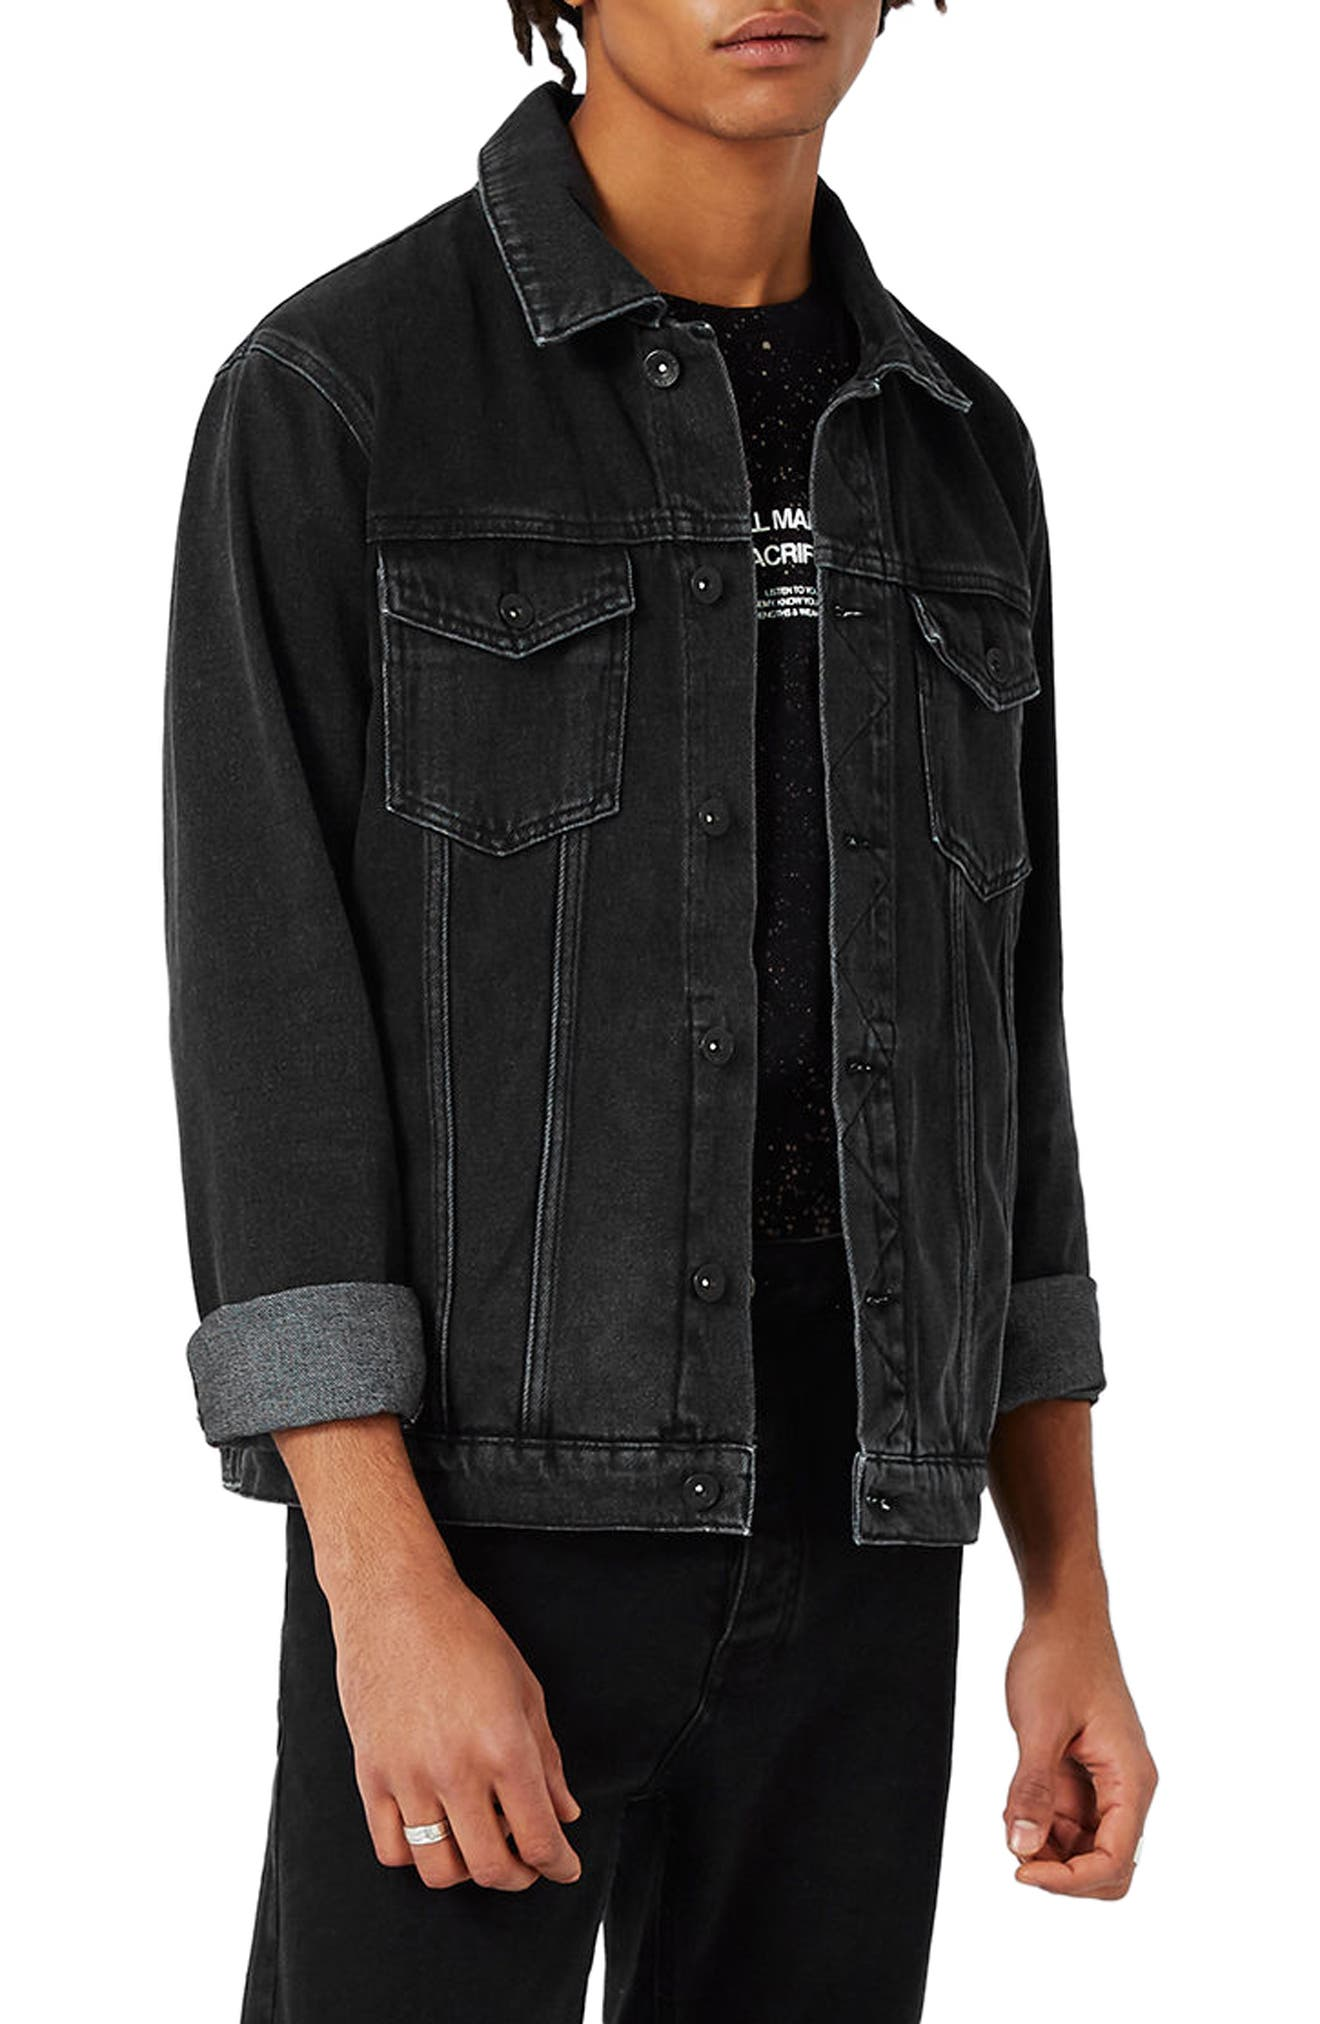 Western Denim Jacket,                             Main thumbnail 1, color,                             Black